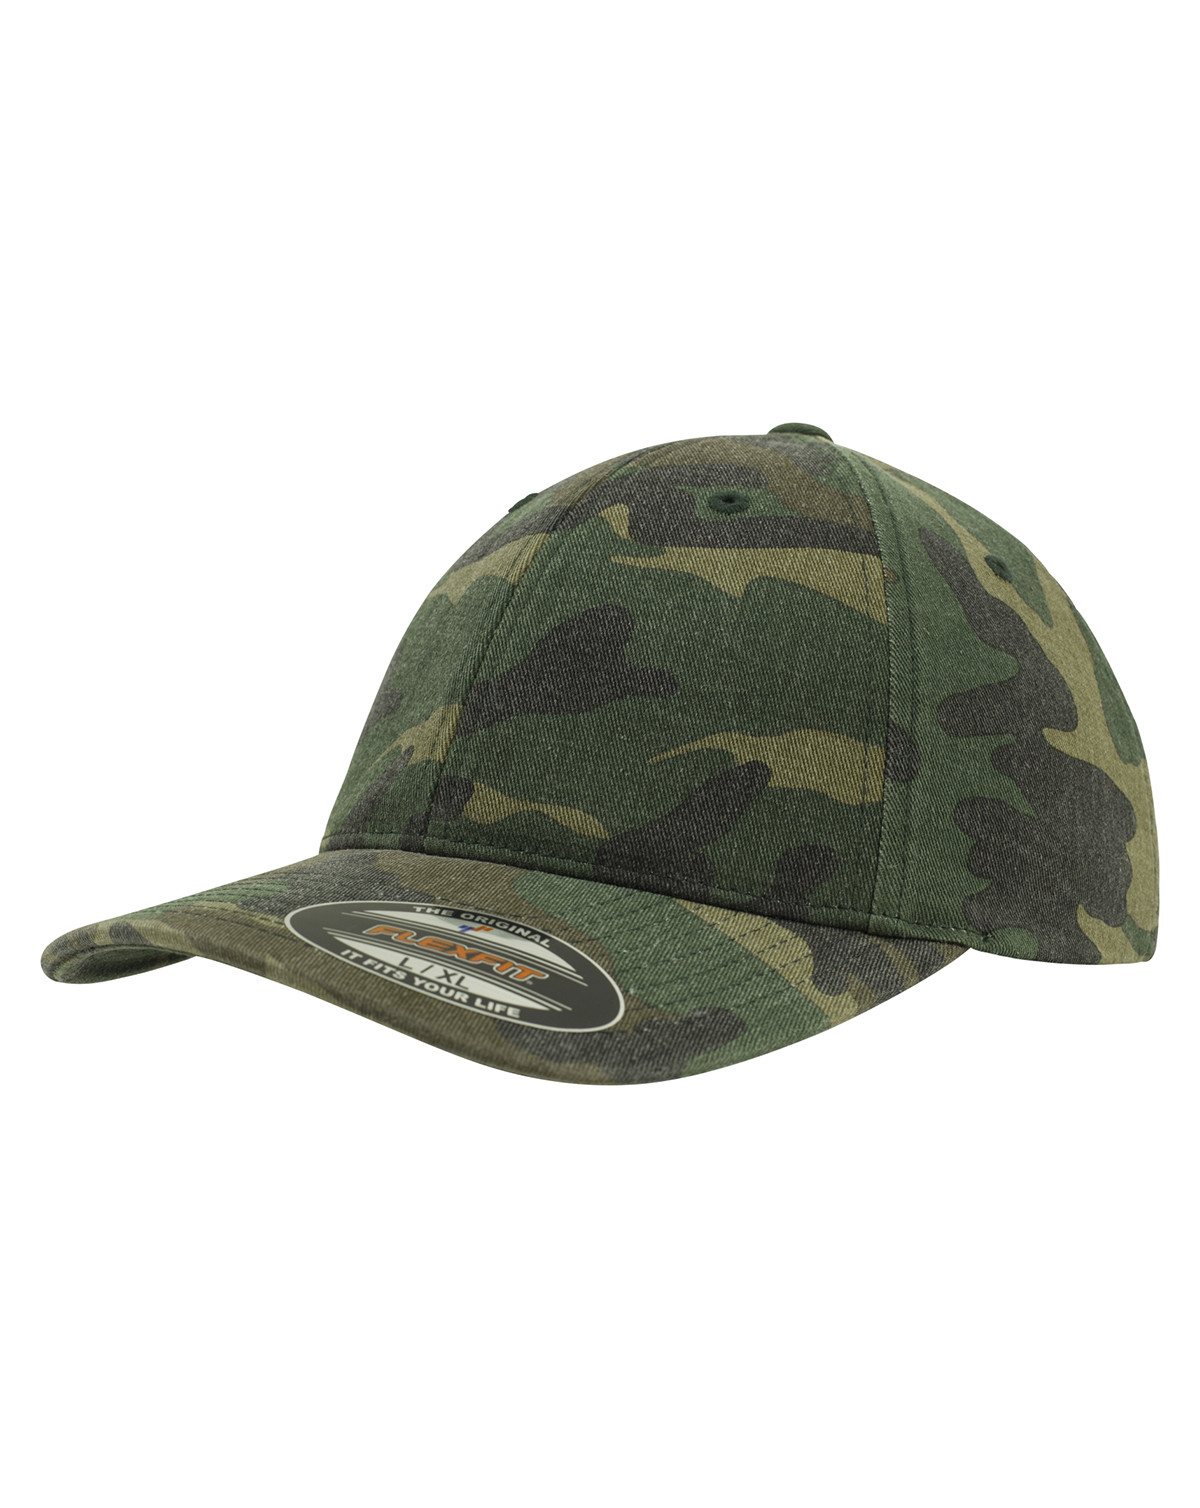 Image of   Flexfit Garment Washed Camo Cap (Woodland, L/XL)